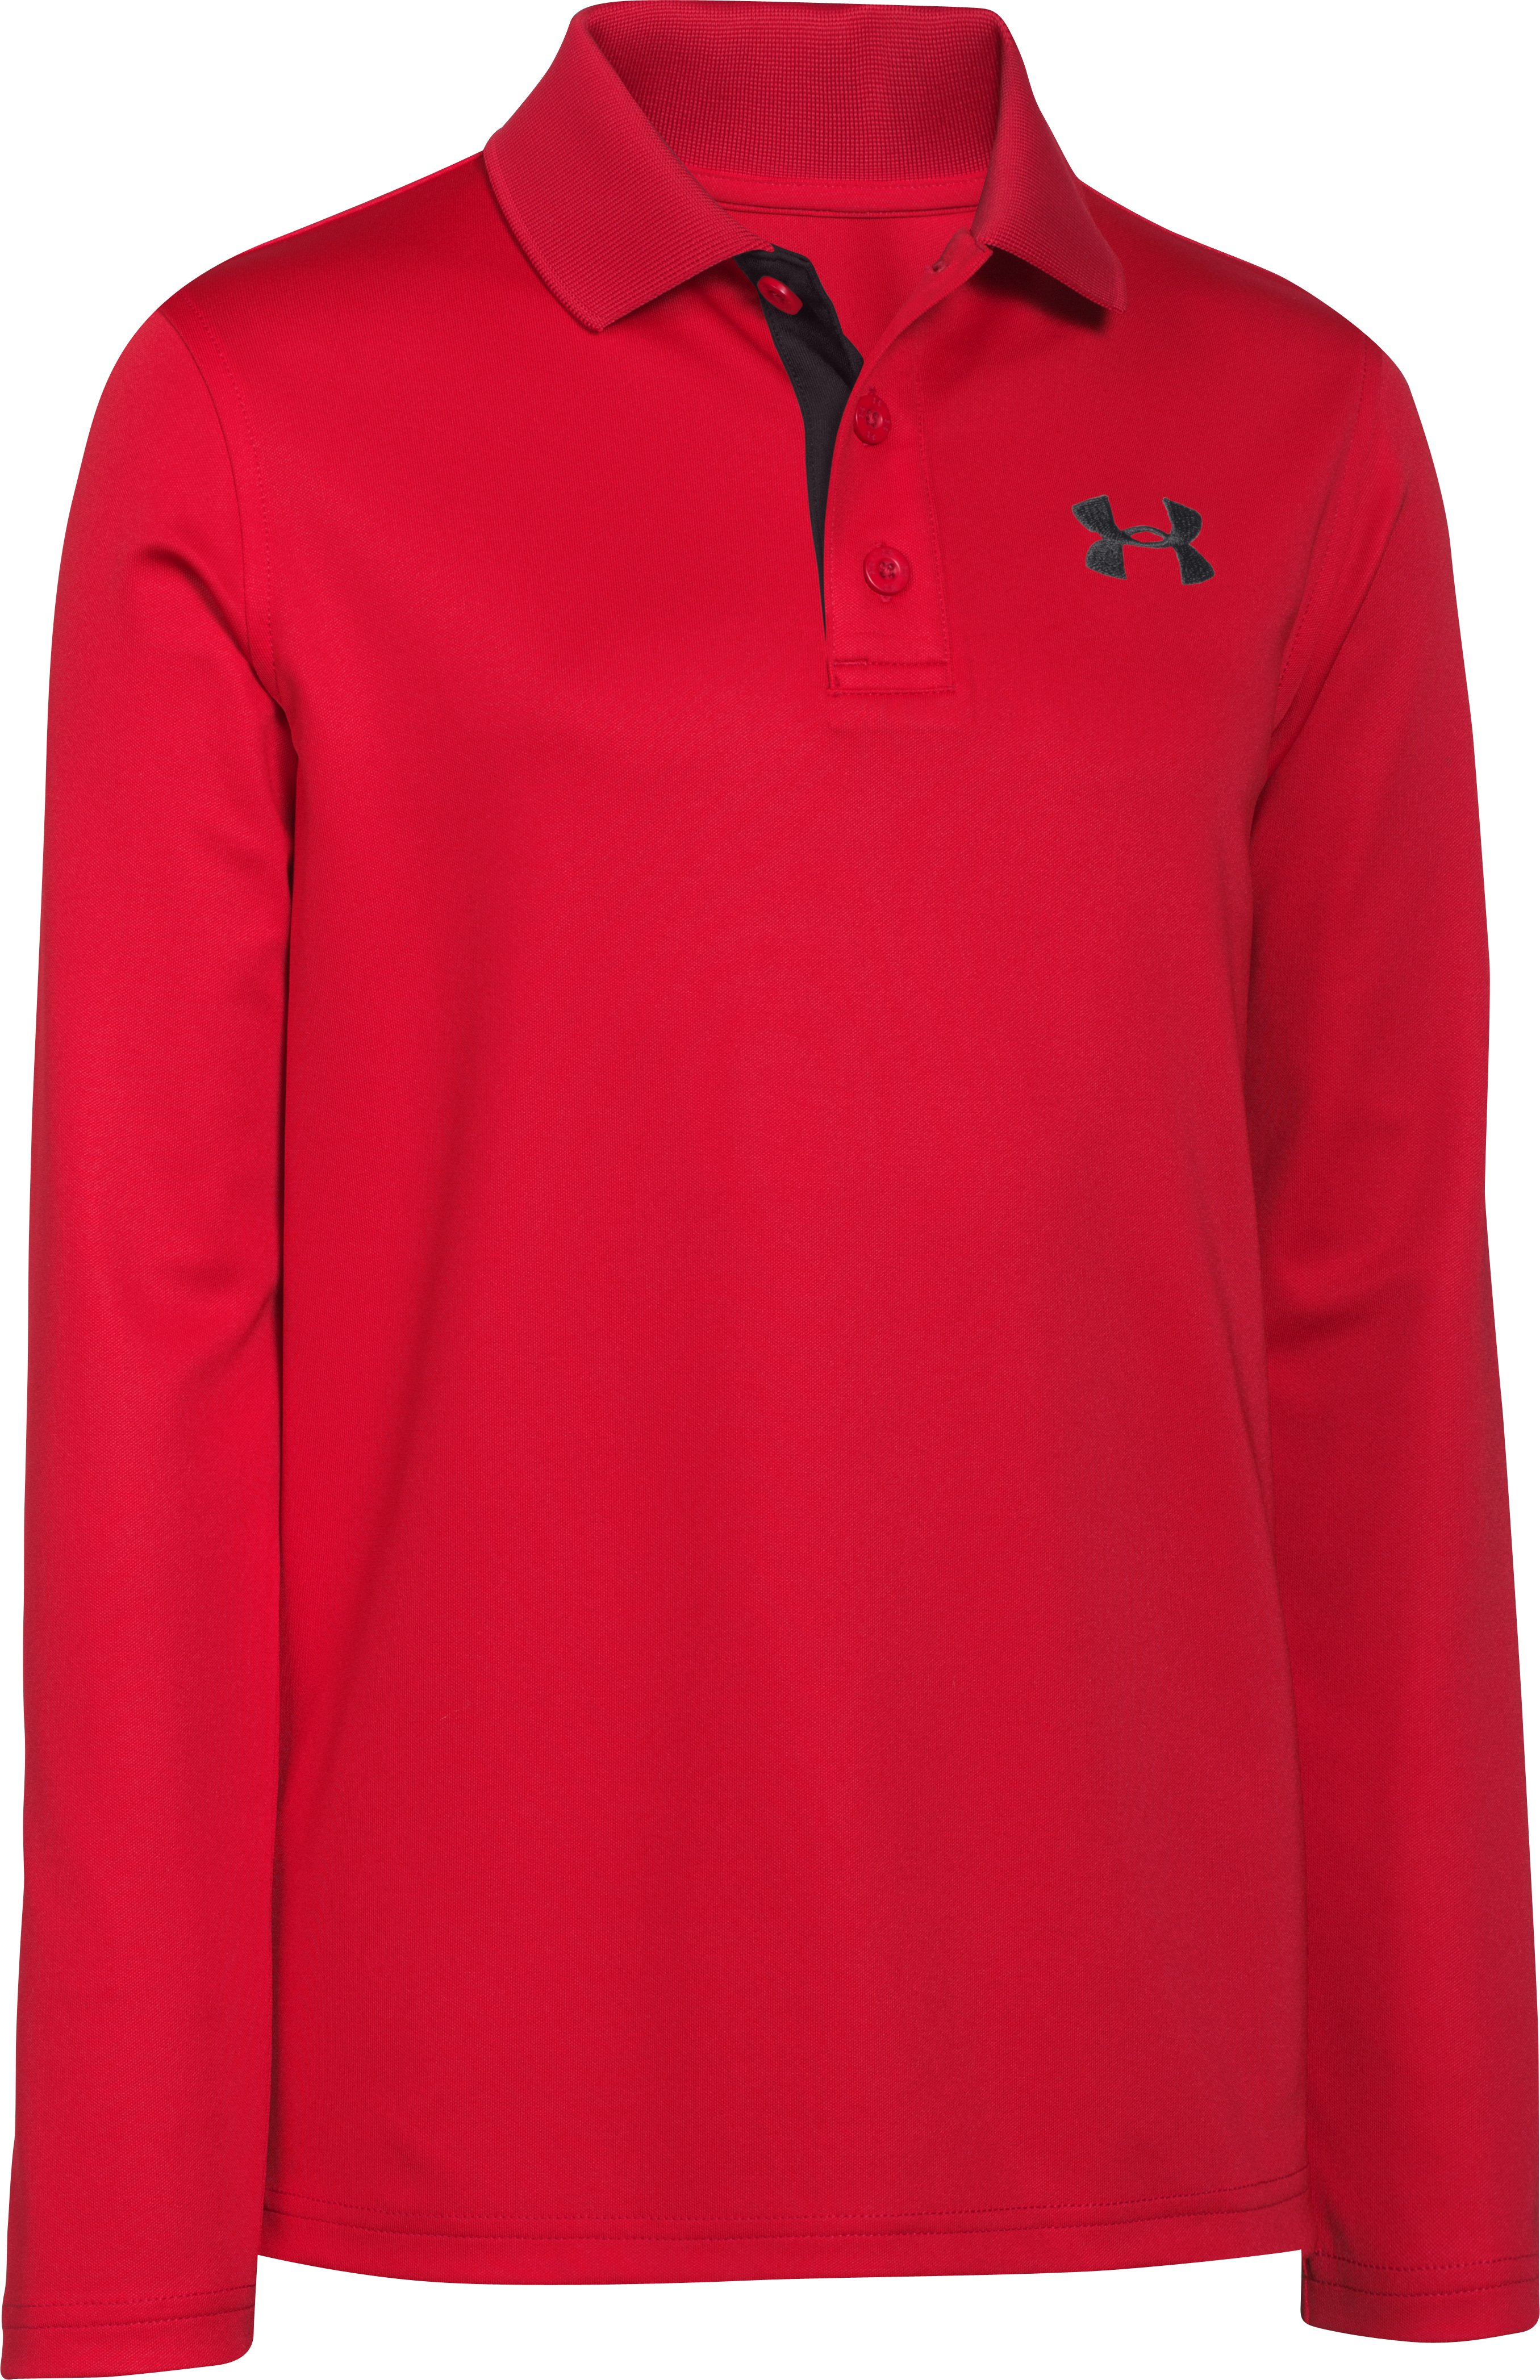 Boys' UA Match Play Long Sleeve Polo, RISK RED